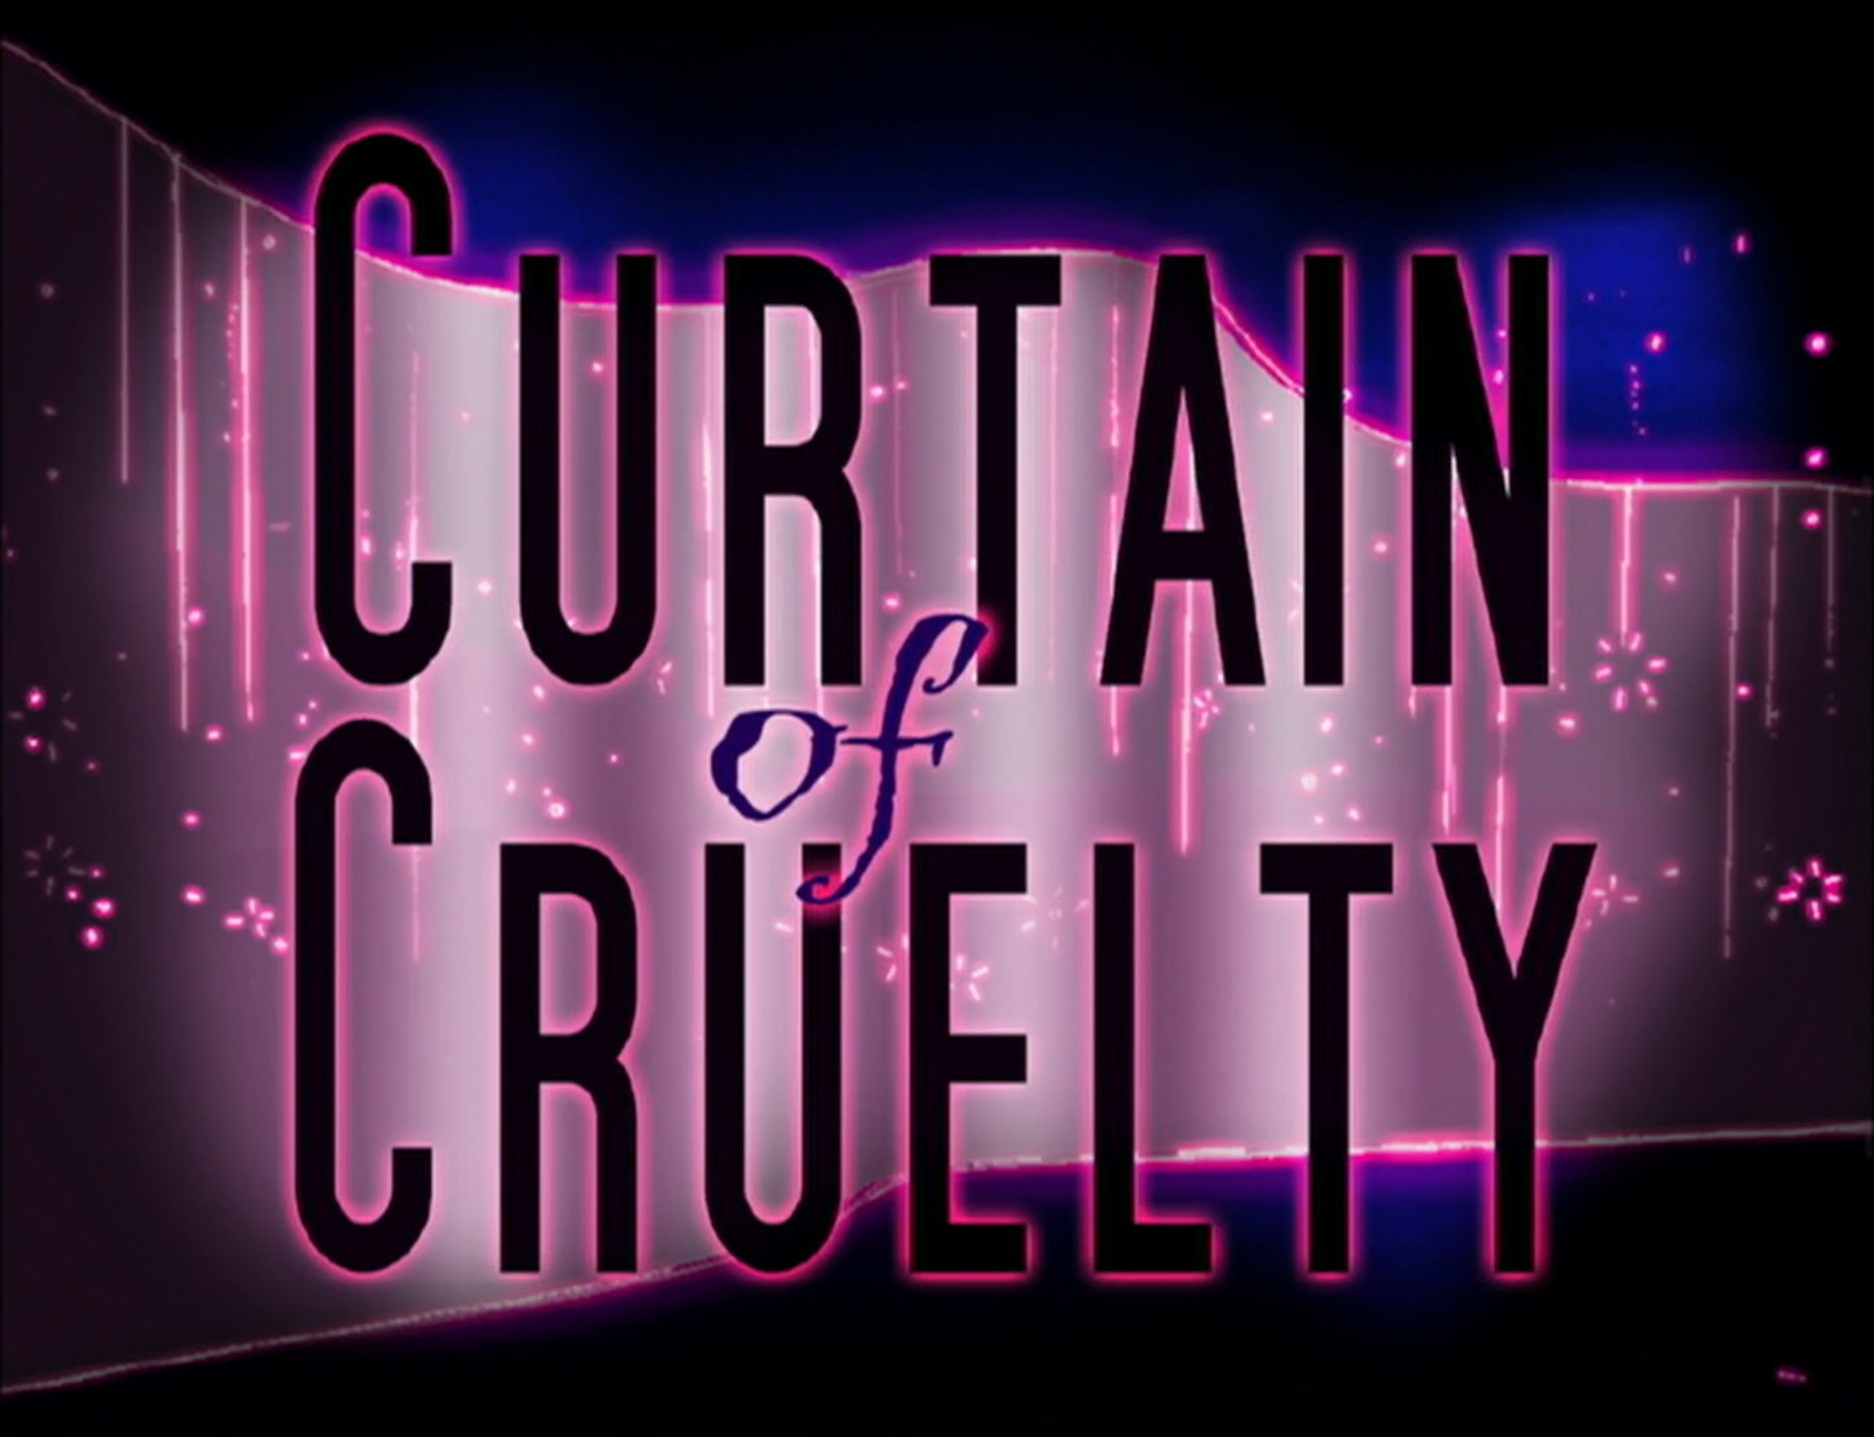 File:Titlecard 306b Curtain of Cruelty.jpg